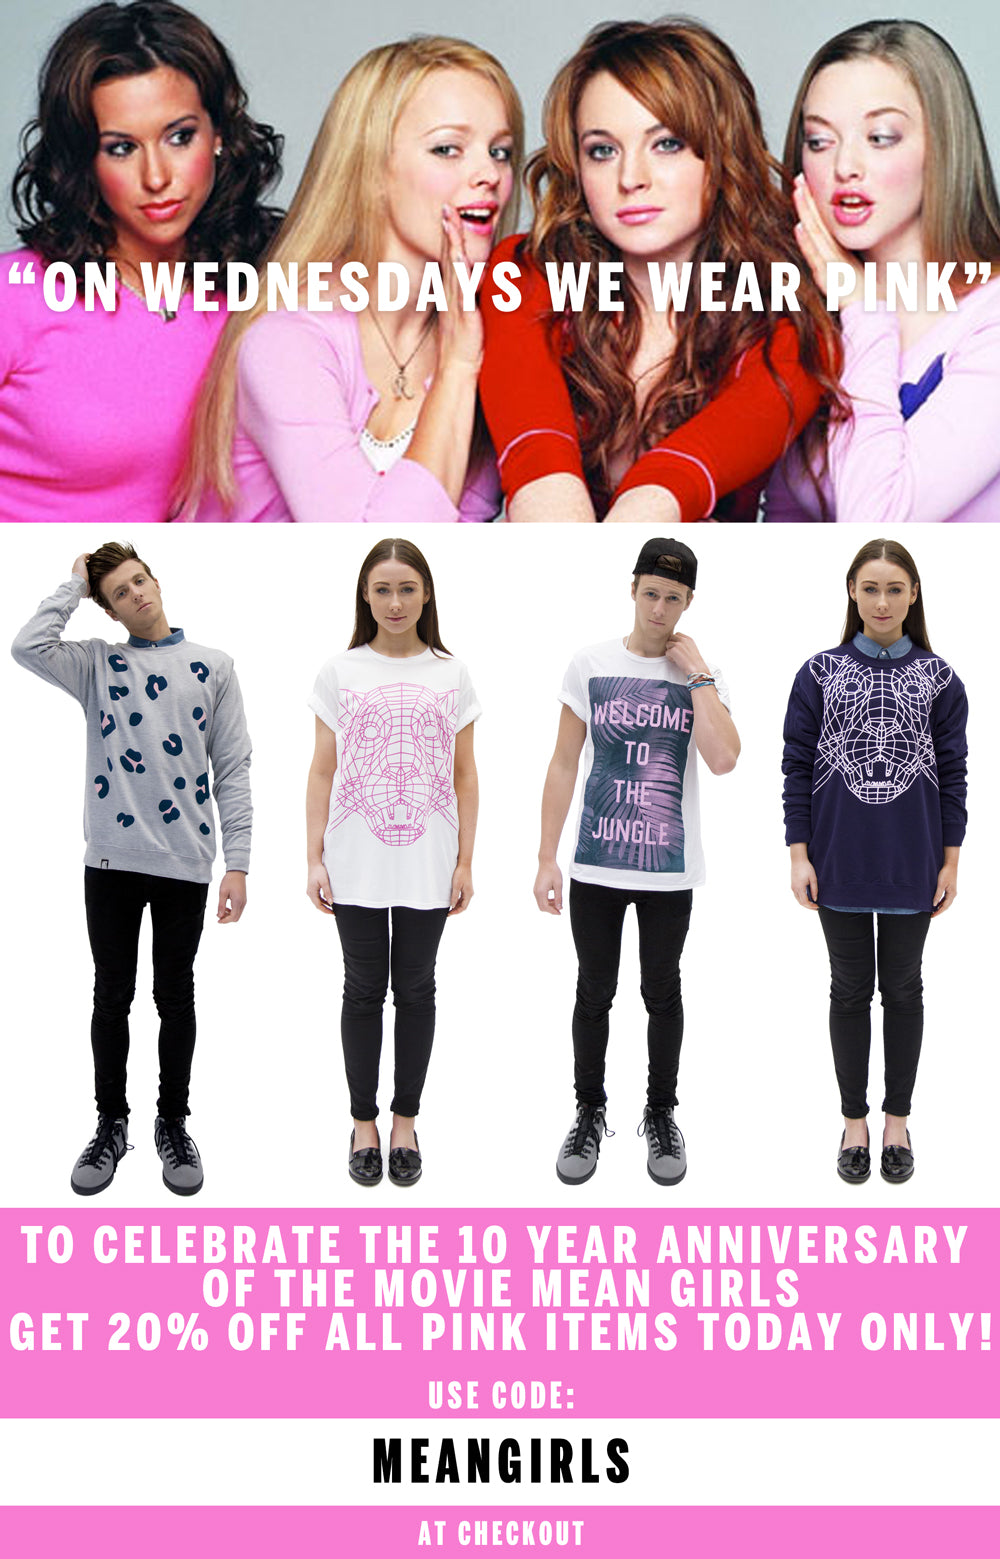 MEAN GIRLS | 20% OFF